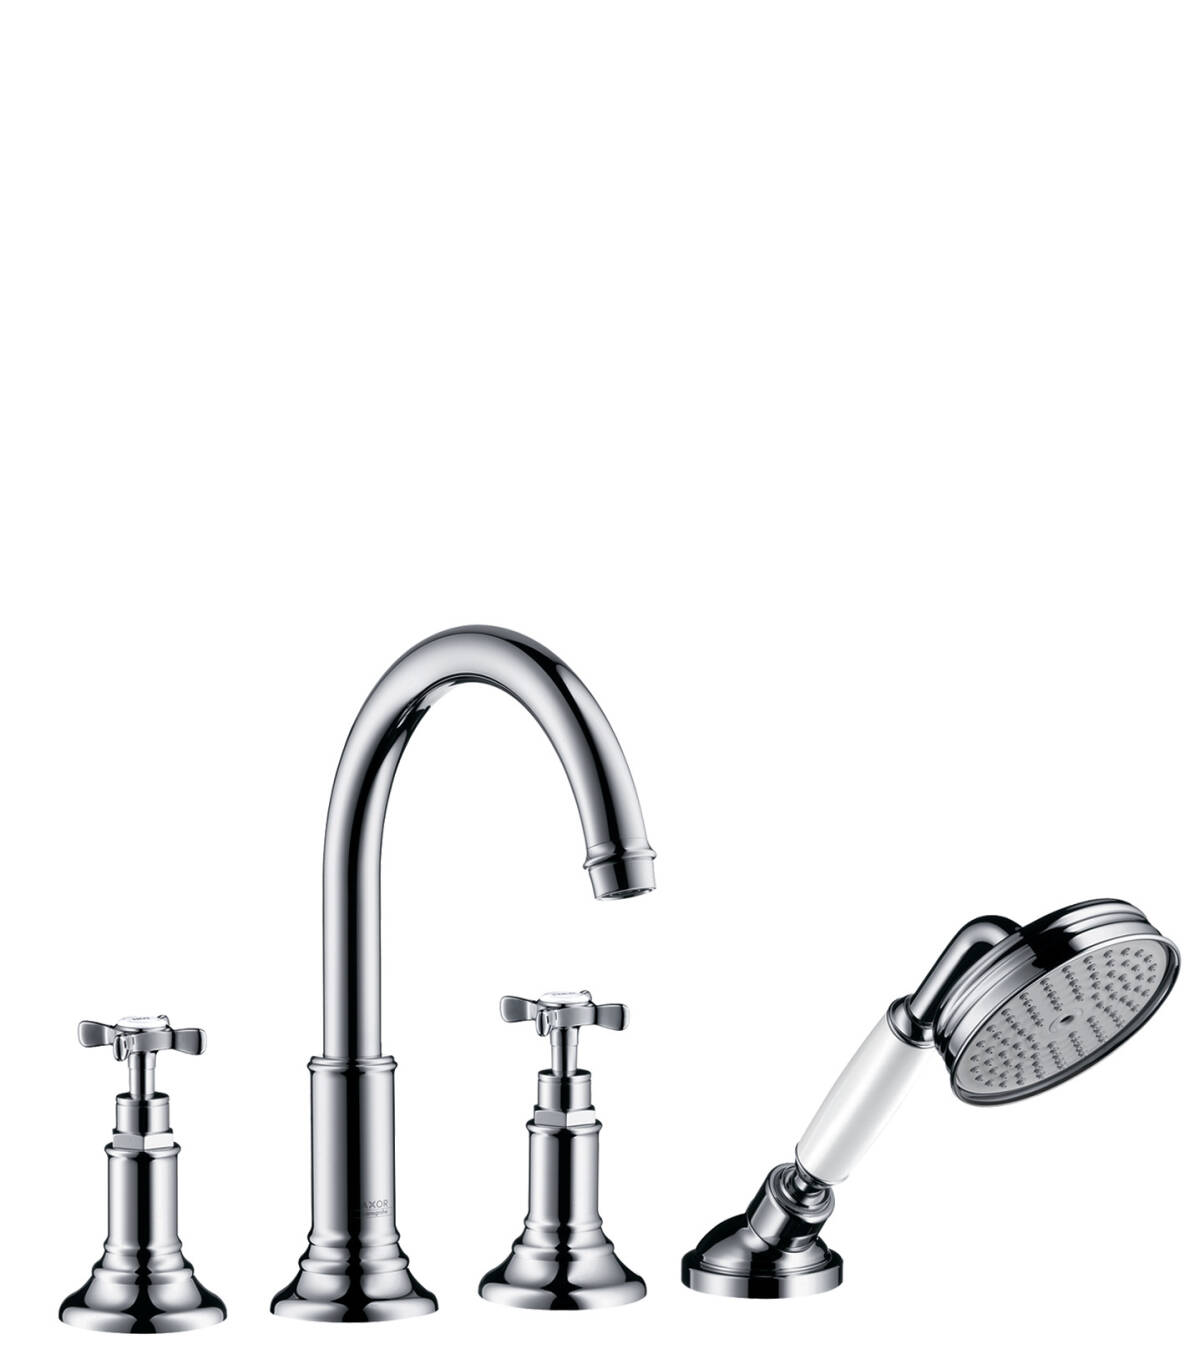 4-hole rim mounted bath mixer, Brushed Black Chrome, 16546340